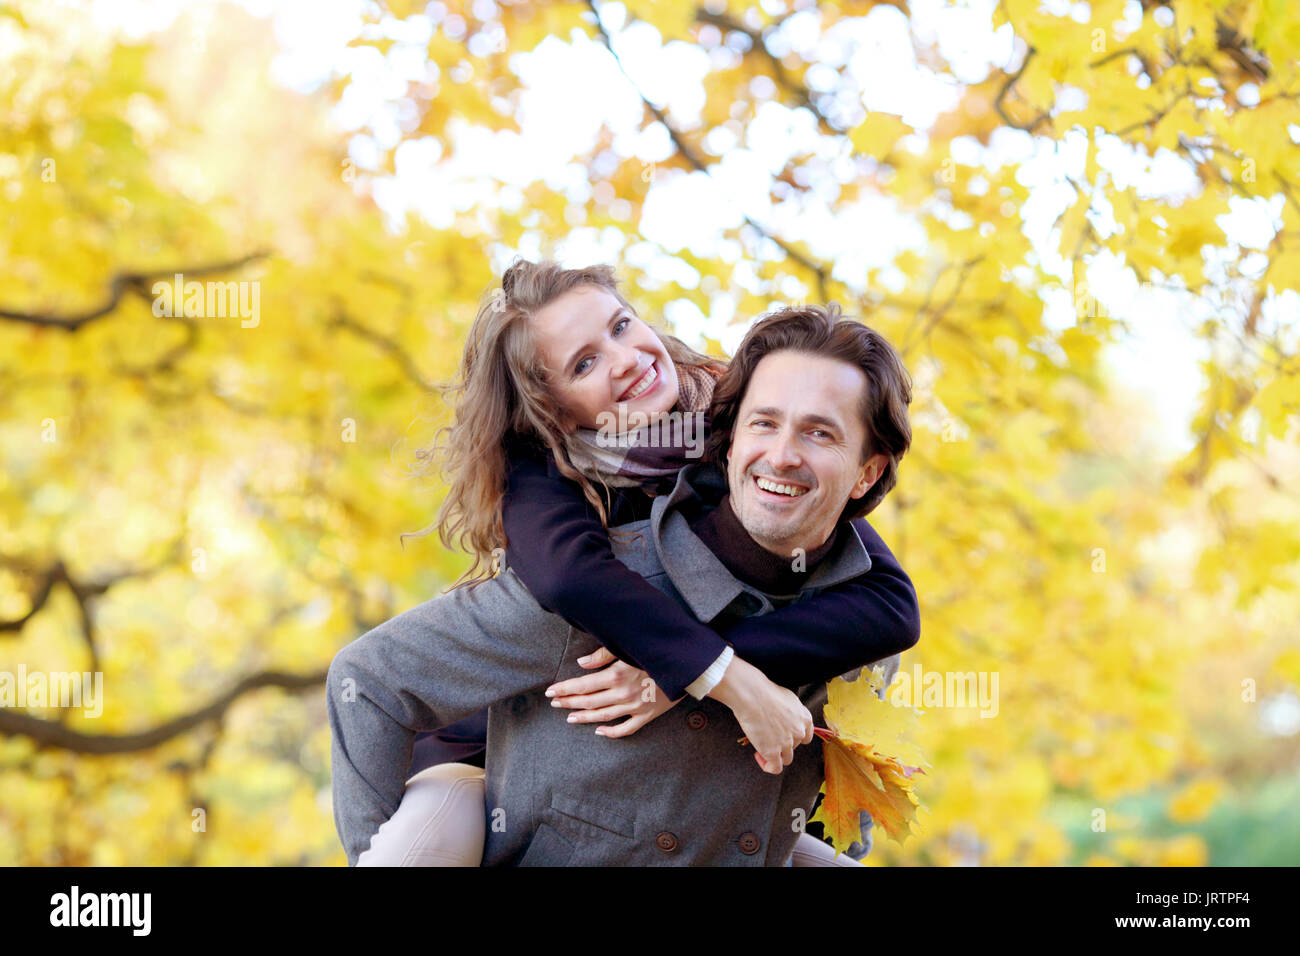 Love, relationships, season and people concept - happy young couple having fun in autumn park piggyback ride - Stock Image